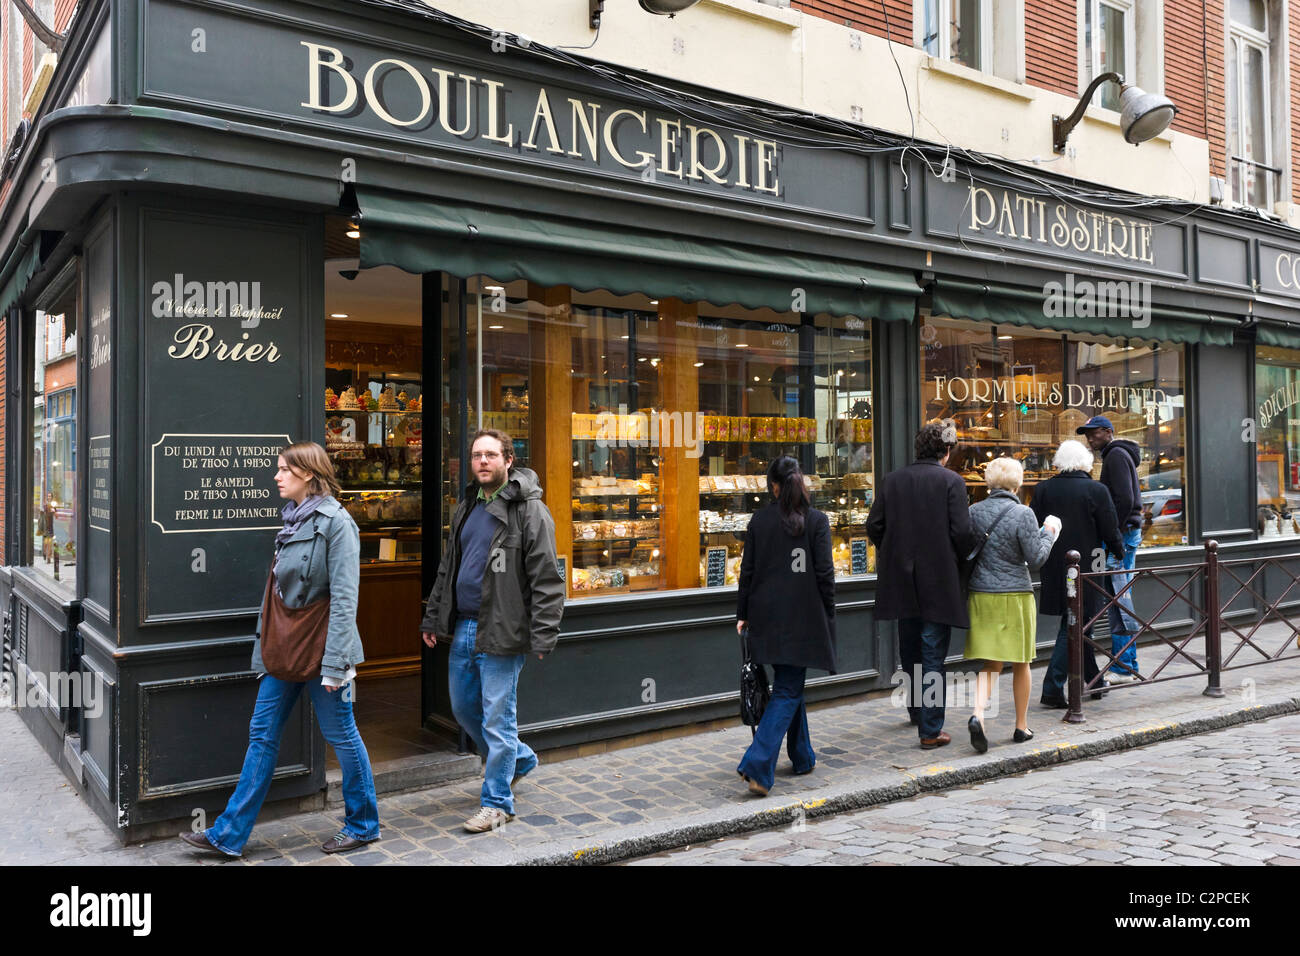 Traditional Boulangerie / Patisserie on a typical street in the historic old quarter (Vieux Lille), Lille, Flanders, - Stock Image